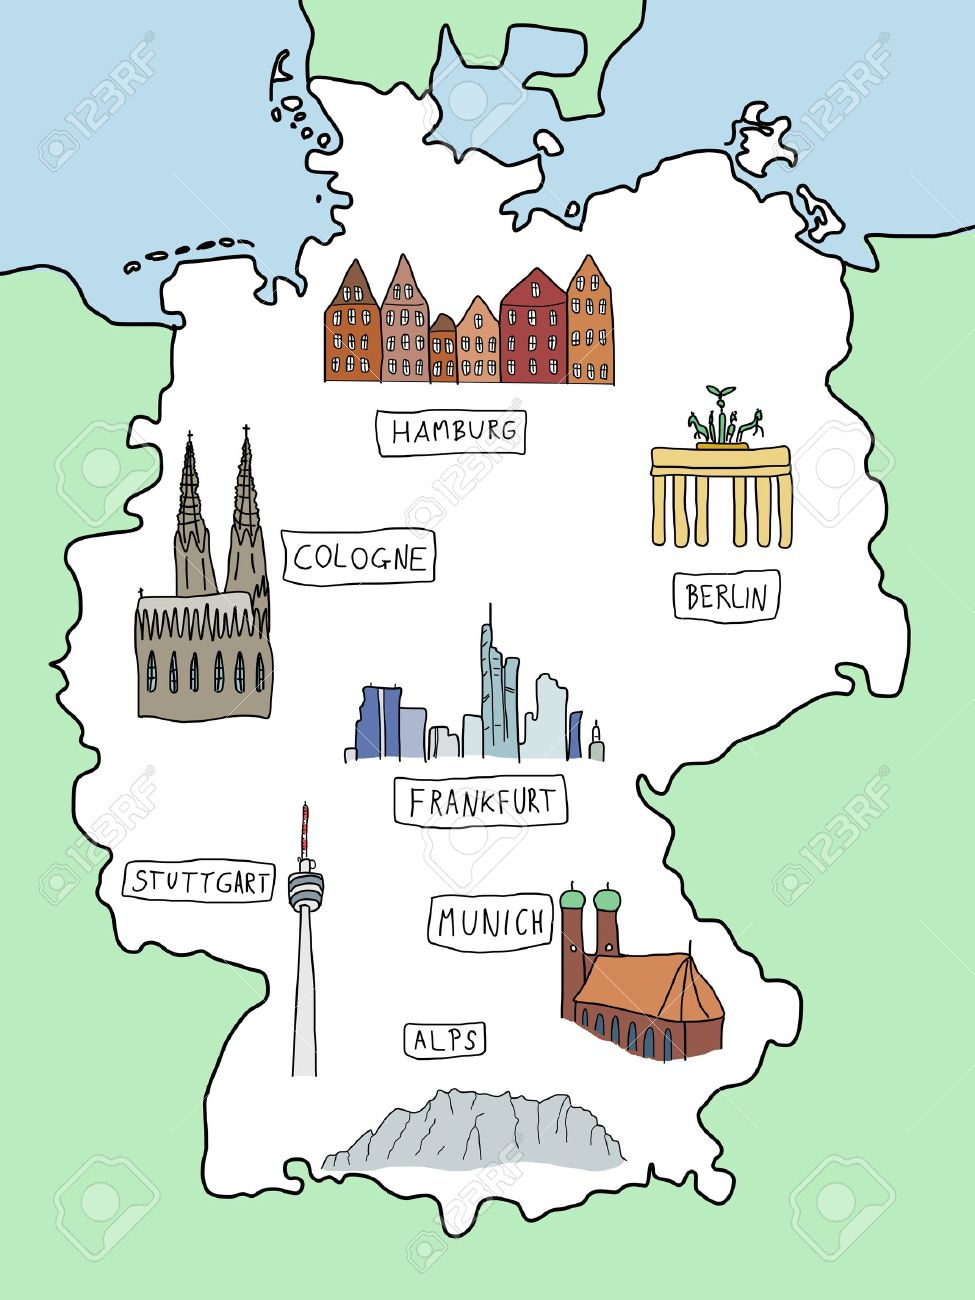 Map Of Germany Showing Cologne.Germany Doodle Map With Famous Places Berlin Hamburg Cologne